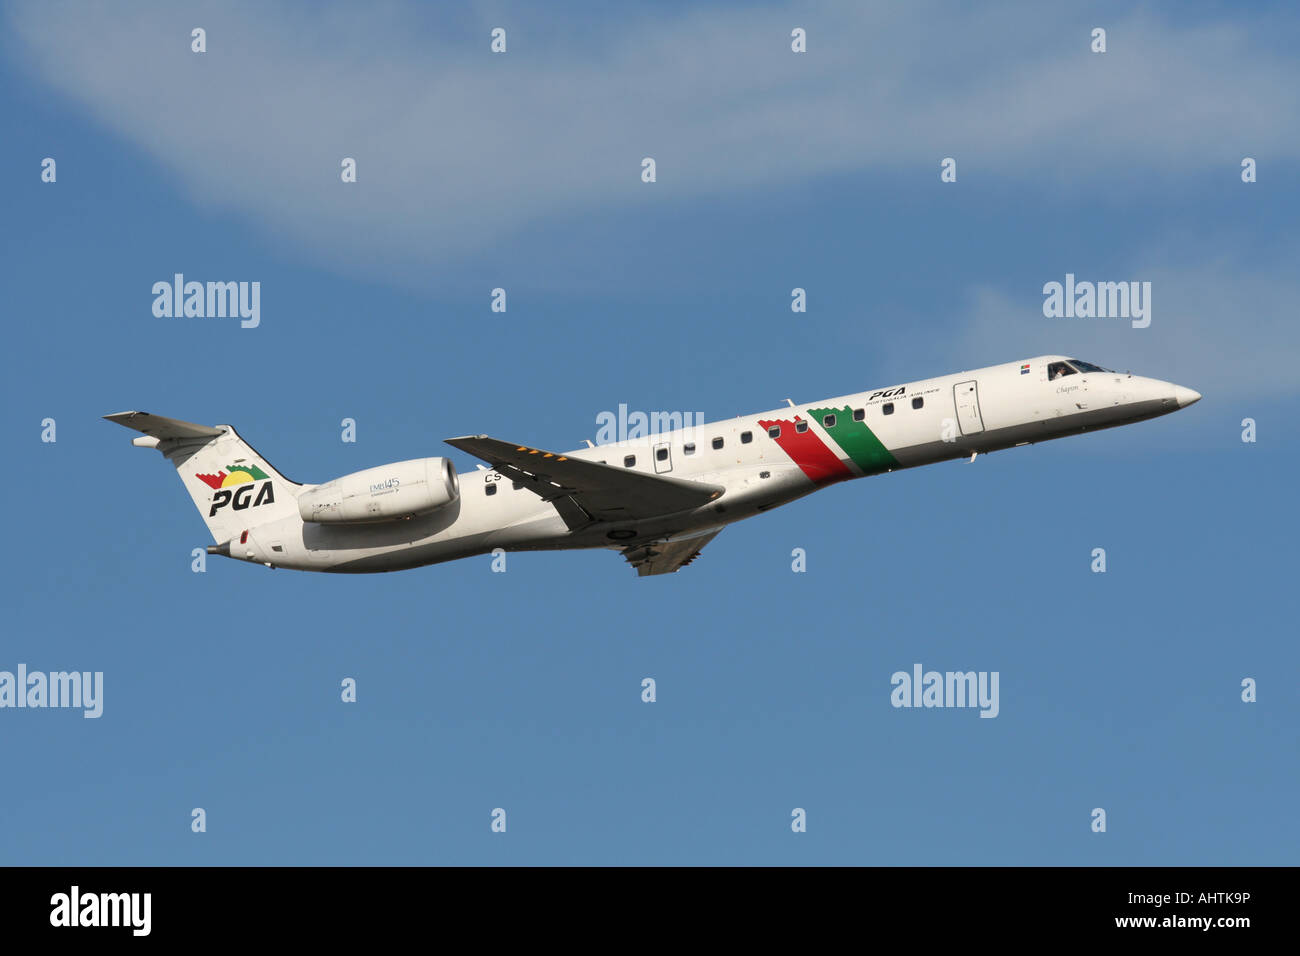 PGA Portugalia Embraer ERJ 145 regional airliner in flight on departure against a blue sky. Short haul air travel. - Stock Image